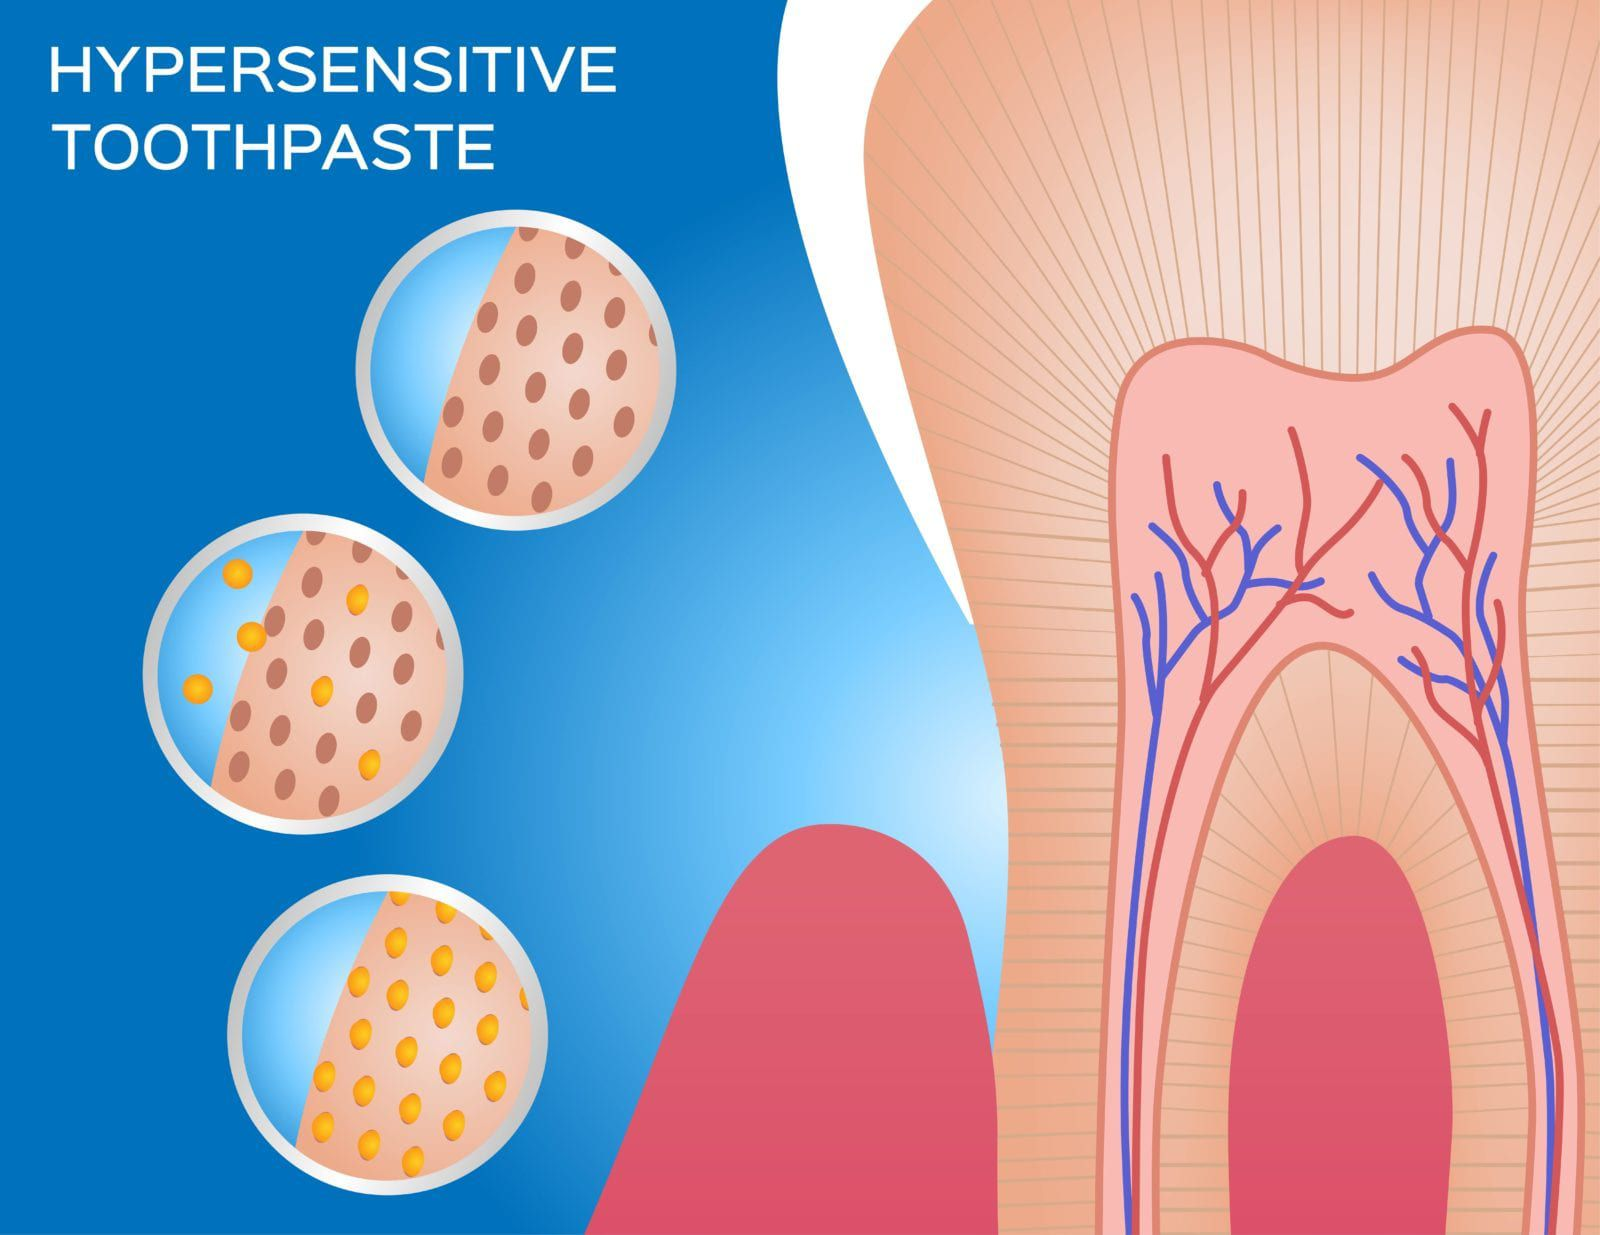 how hypersensitive toothpaste works